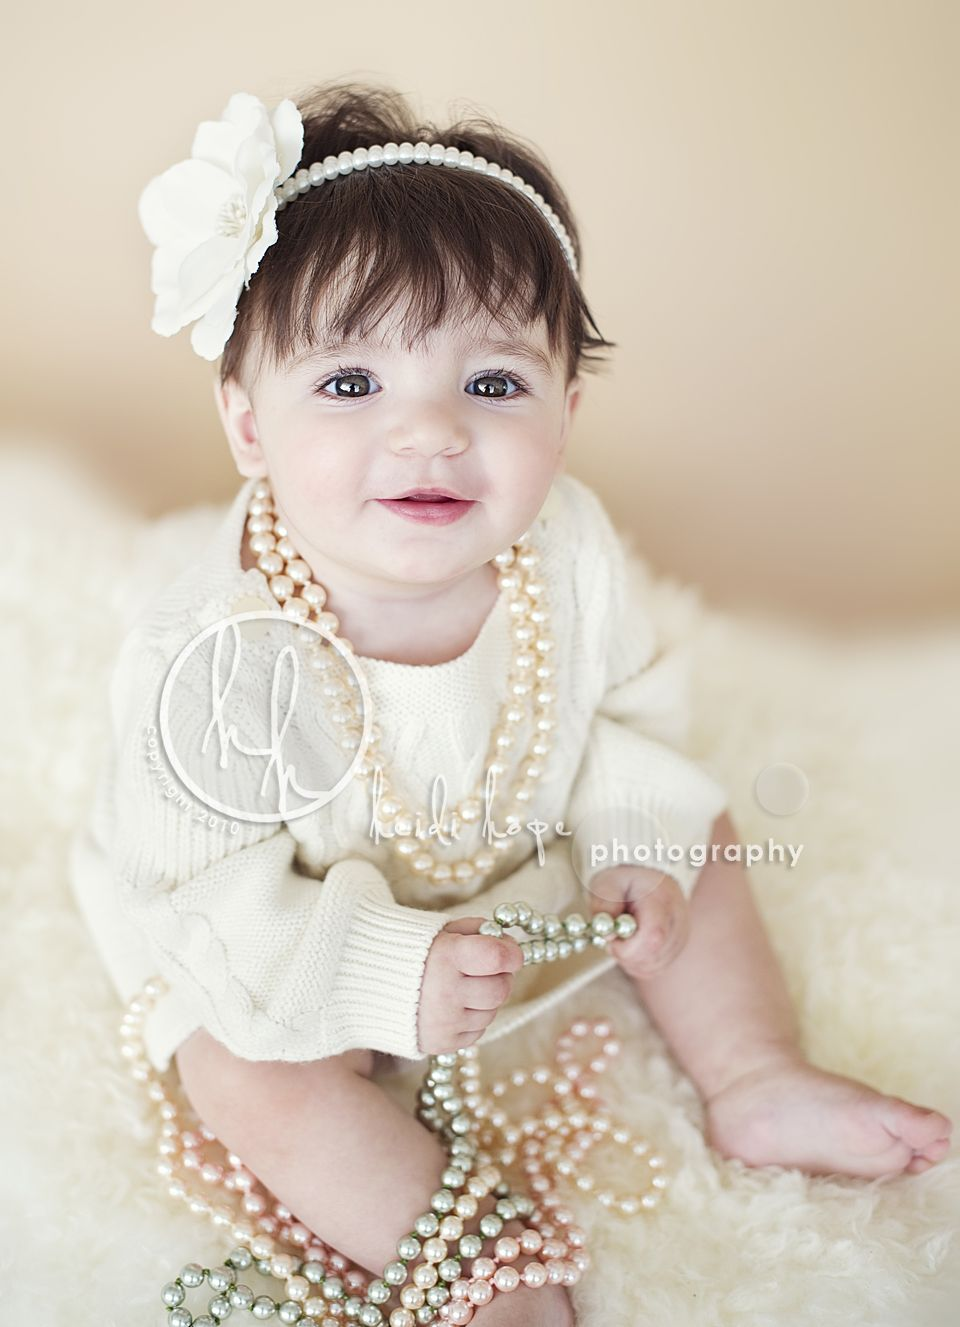 6 month baby picture ideas Baby A, 6 months old! Rhode